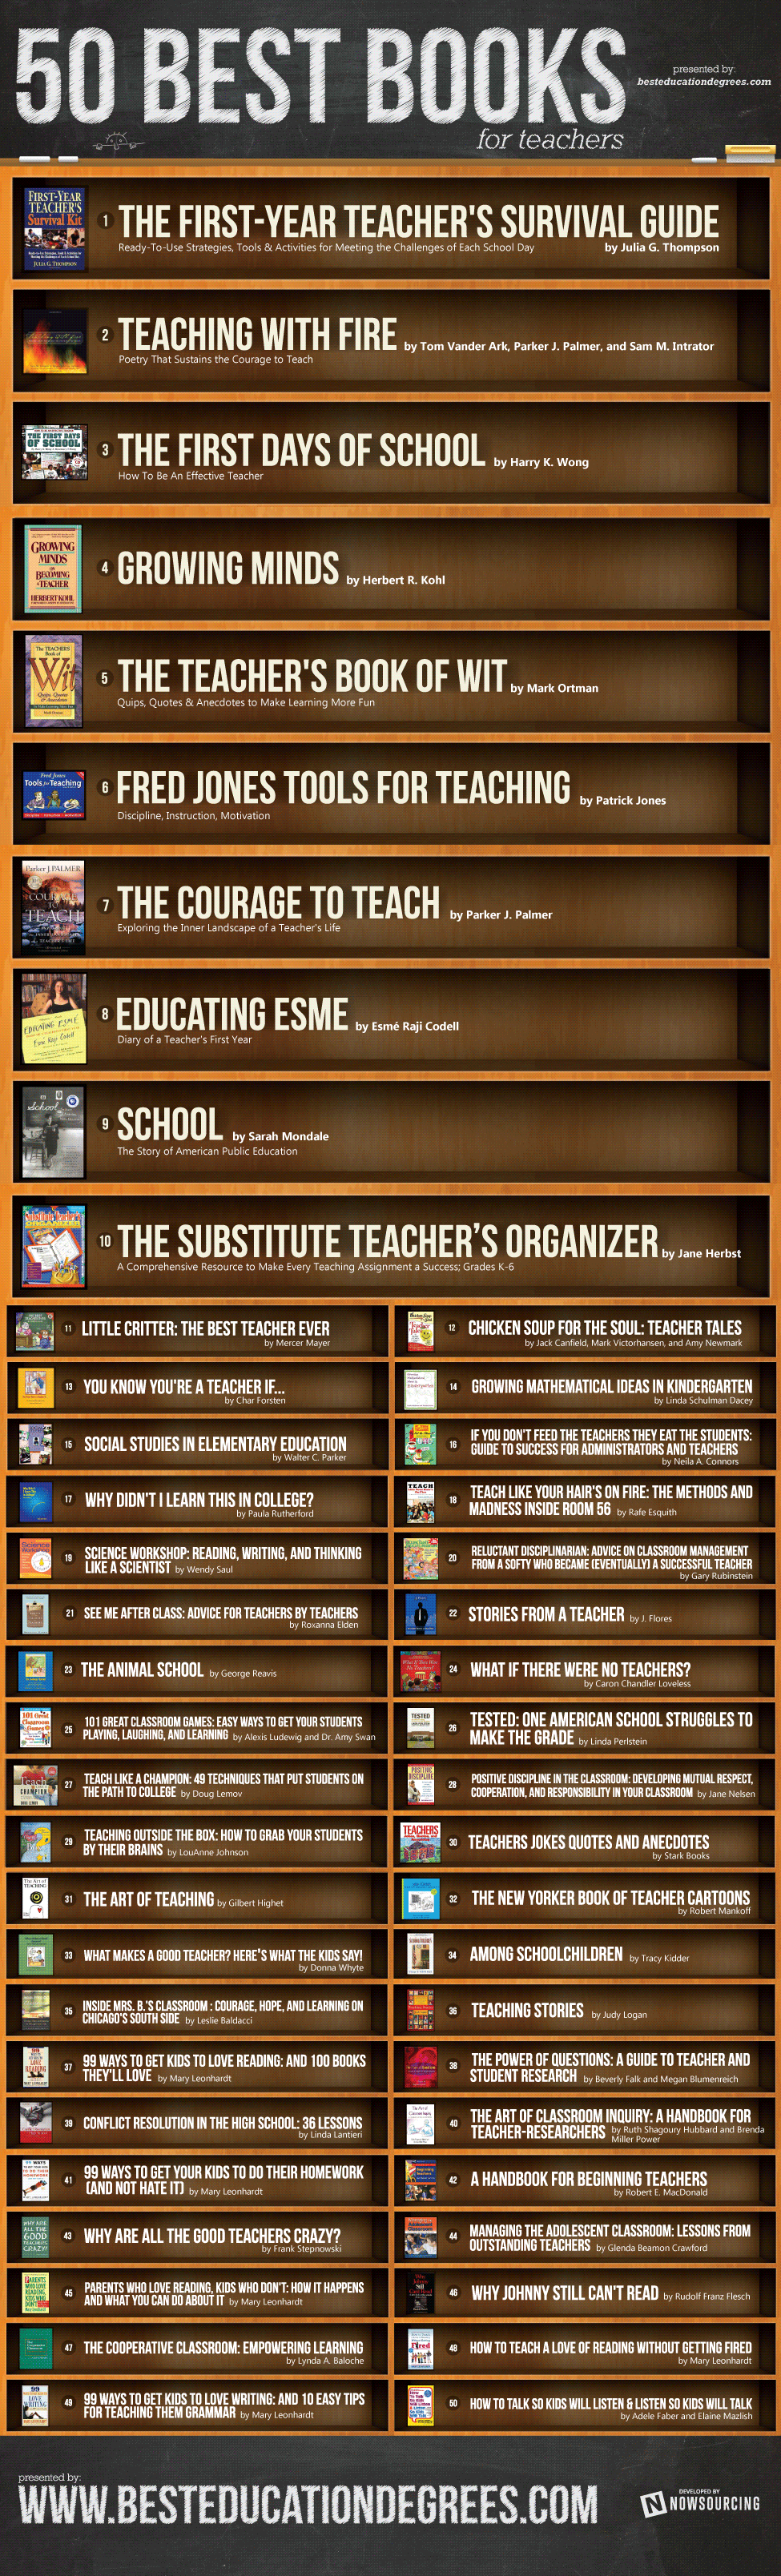 50-best-books-for-teachers_50b3d842cdb27